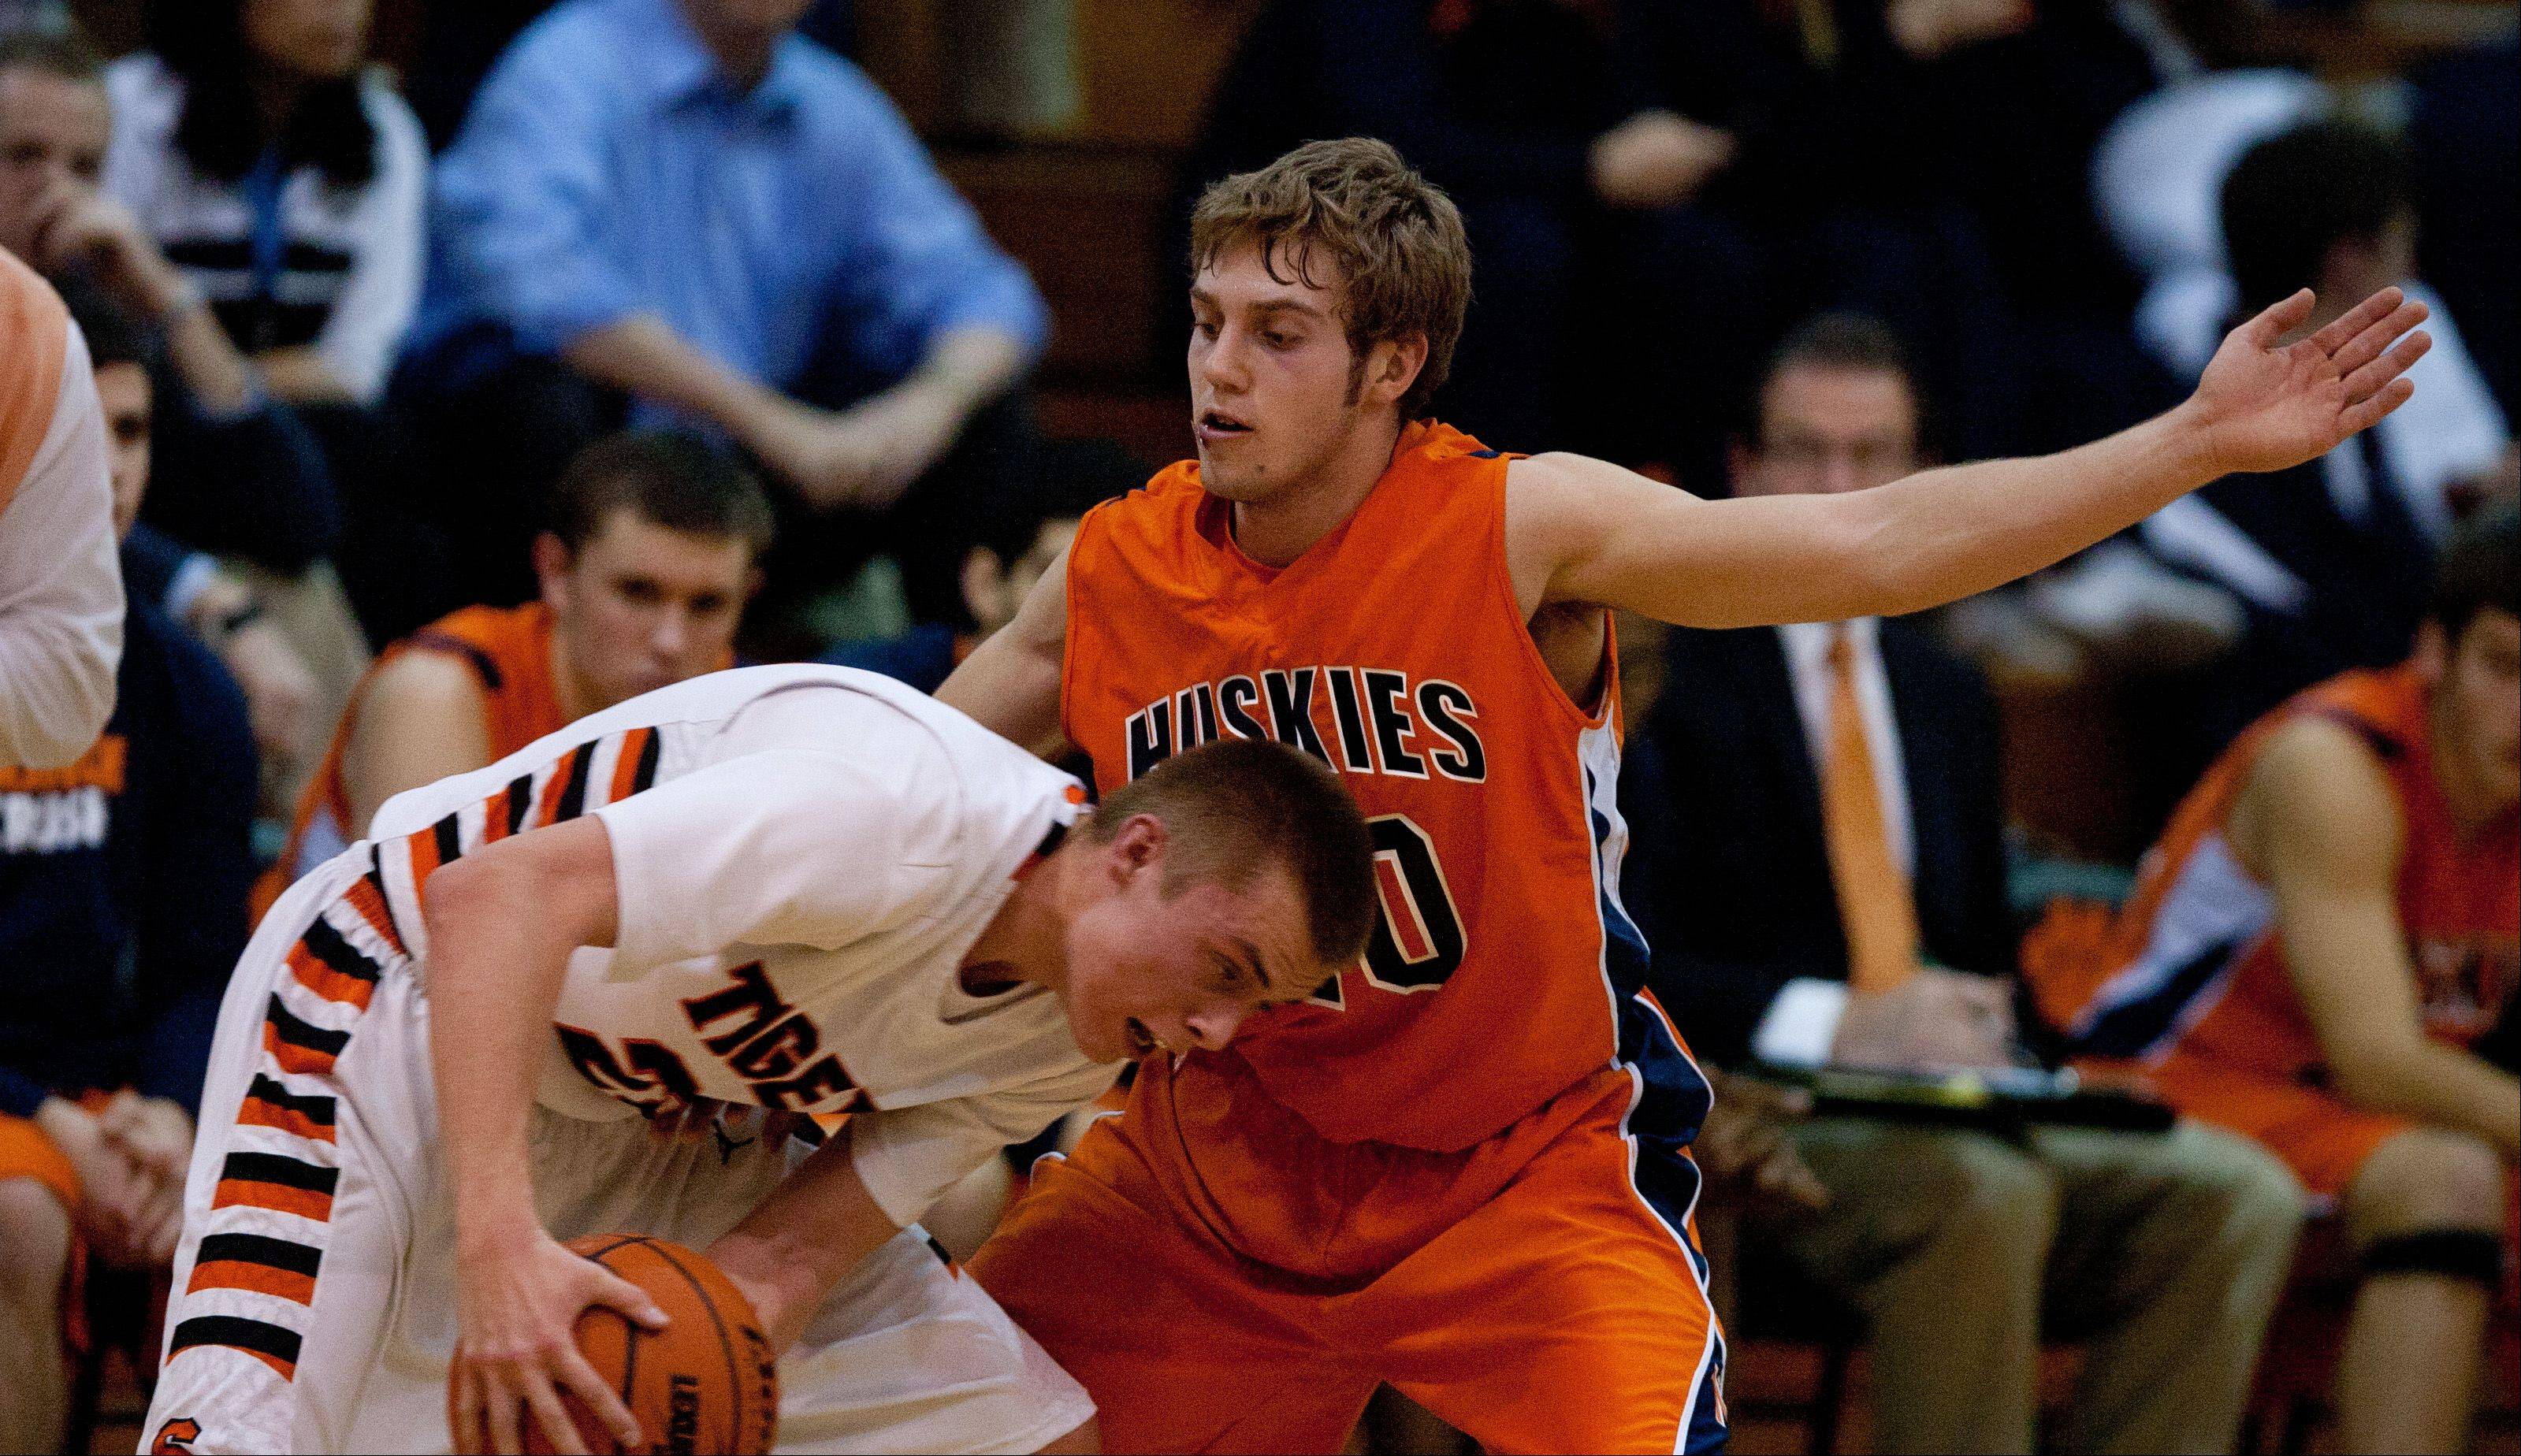 Wheaton Warrenville South's Michael Kramer, left, lowers his head against a Naperville North defender during boys basketball action in Wheaton.